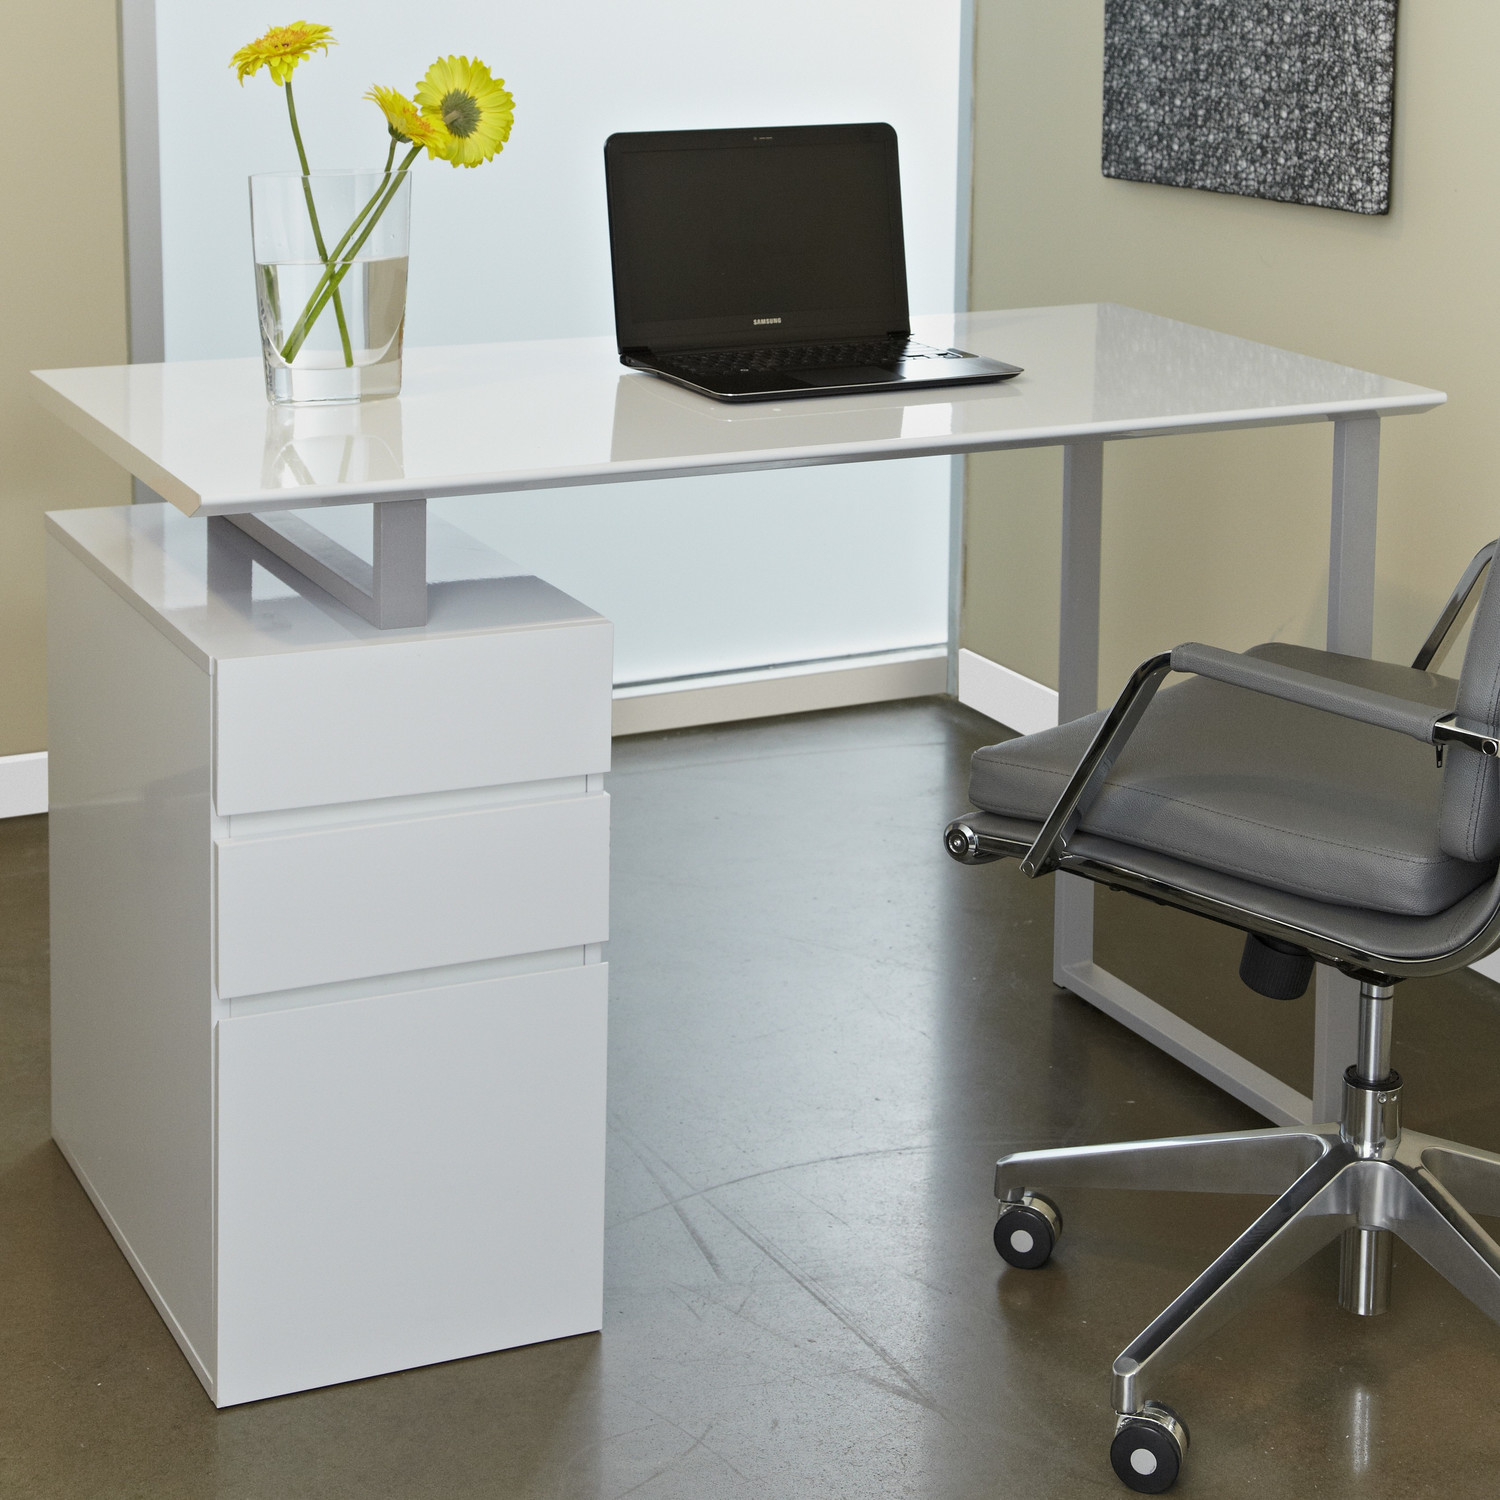 Place Grey Swivel Chair and White Desk with Drawers Completing Stunning Home Office with Concrete Flooring